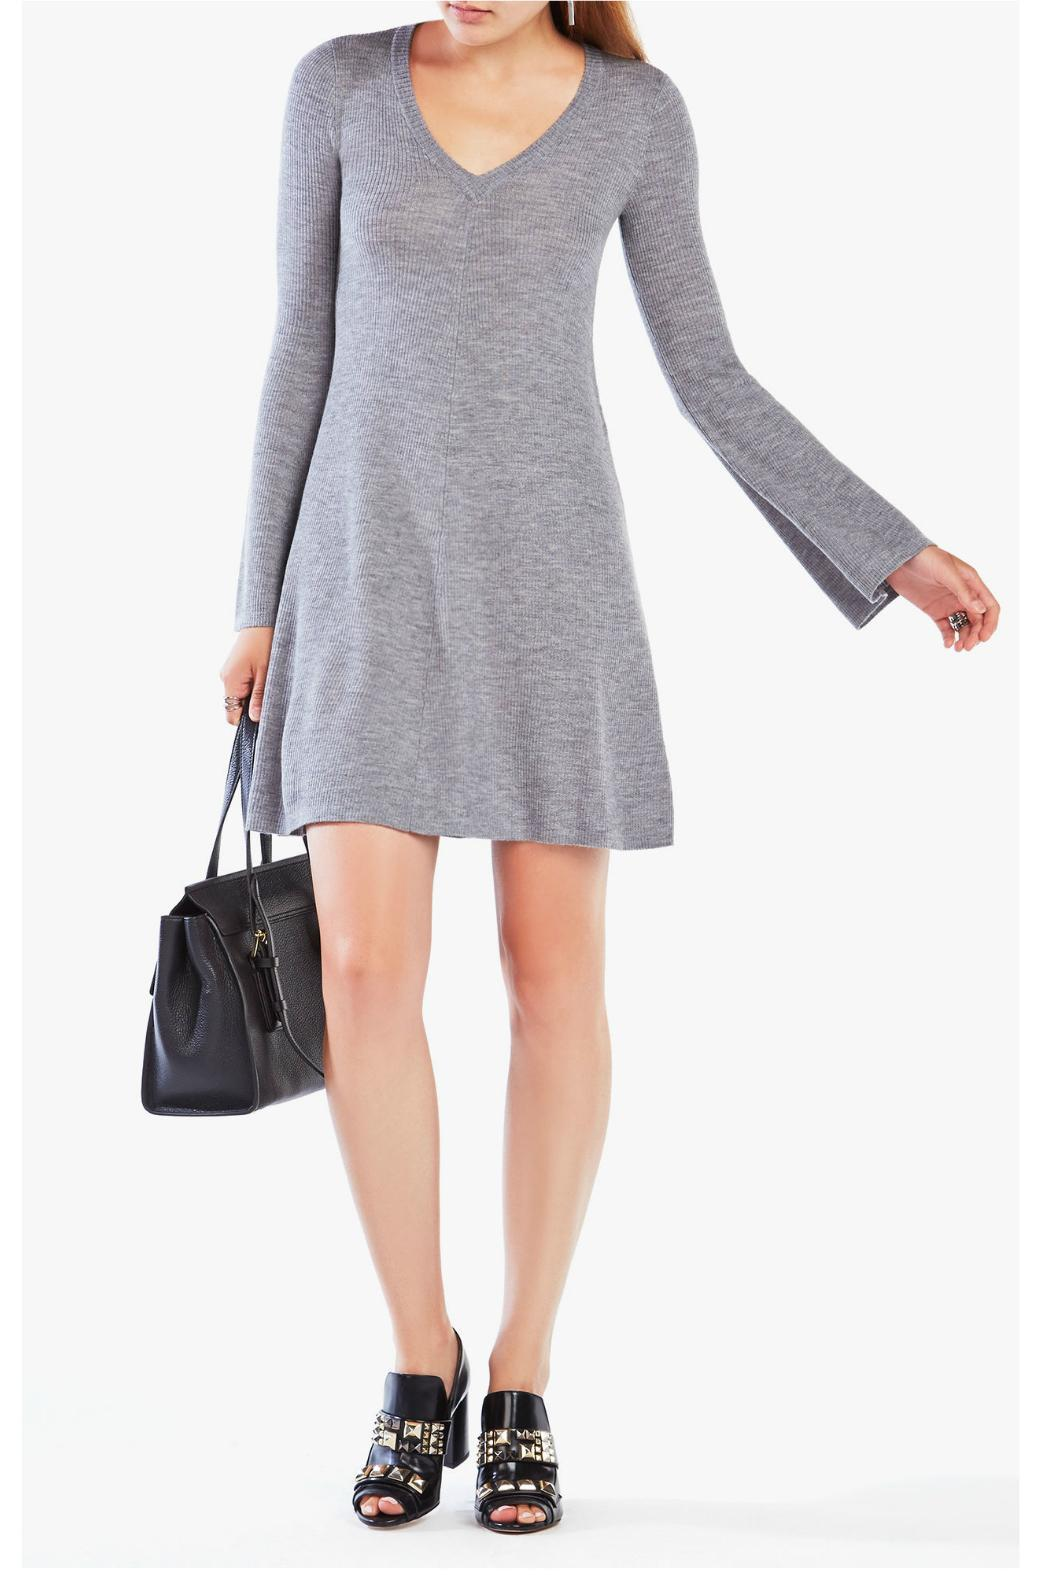 BCBG Max Azria Althea Sweater Dress - Main Image